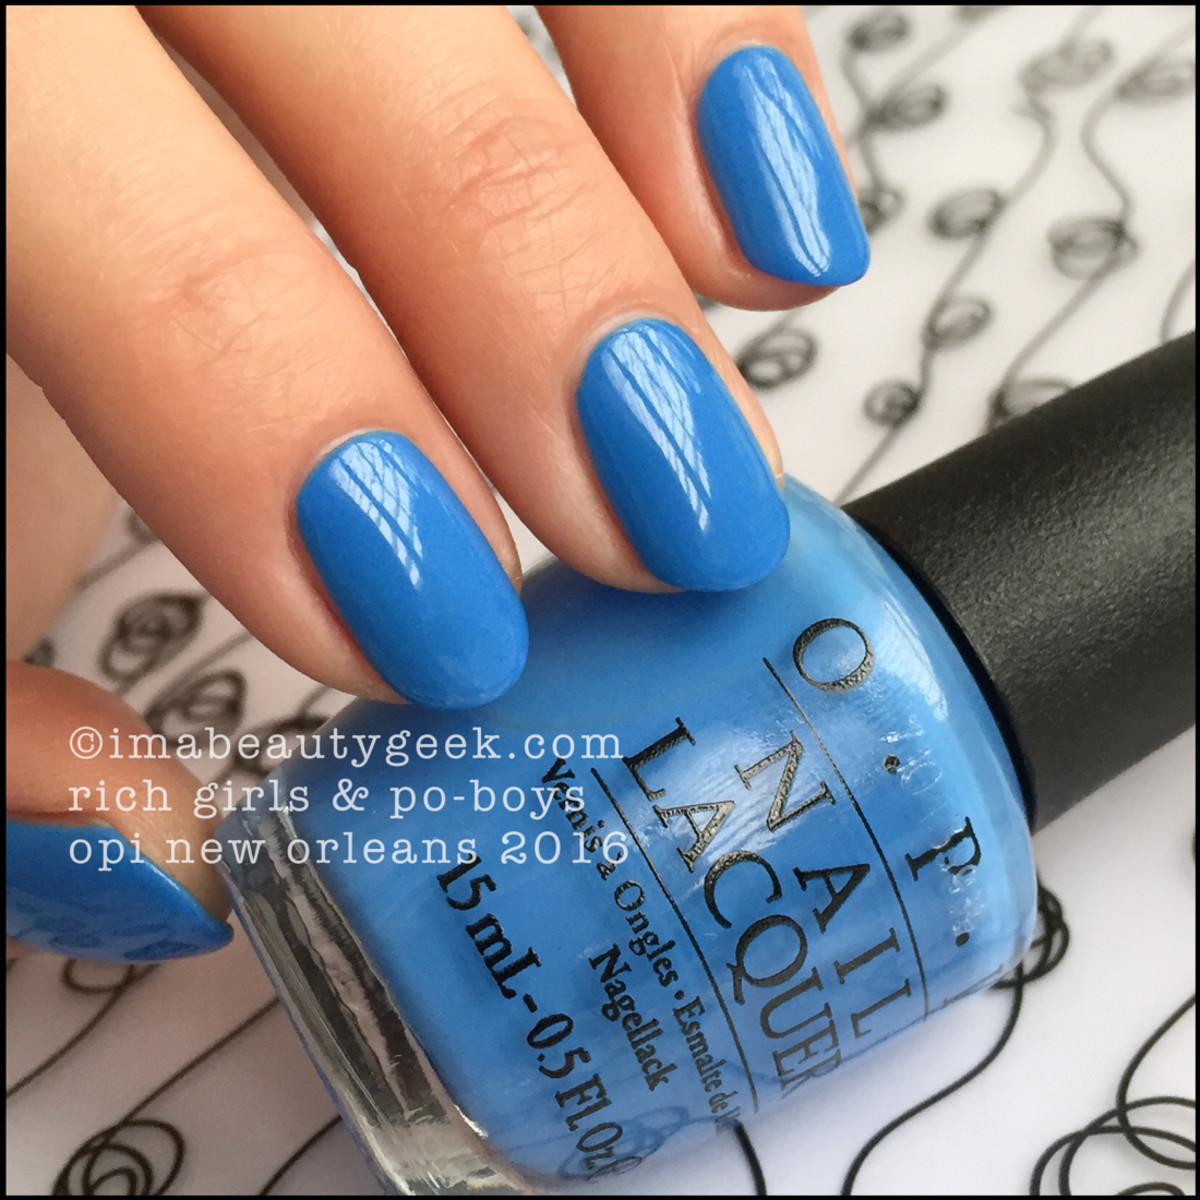 OPI Rich Girls Po Boys_OPI New Orleans 2016 Collection Swatches Review